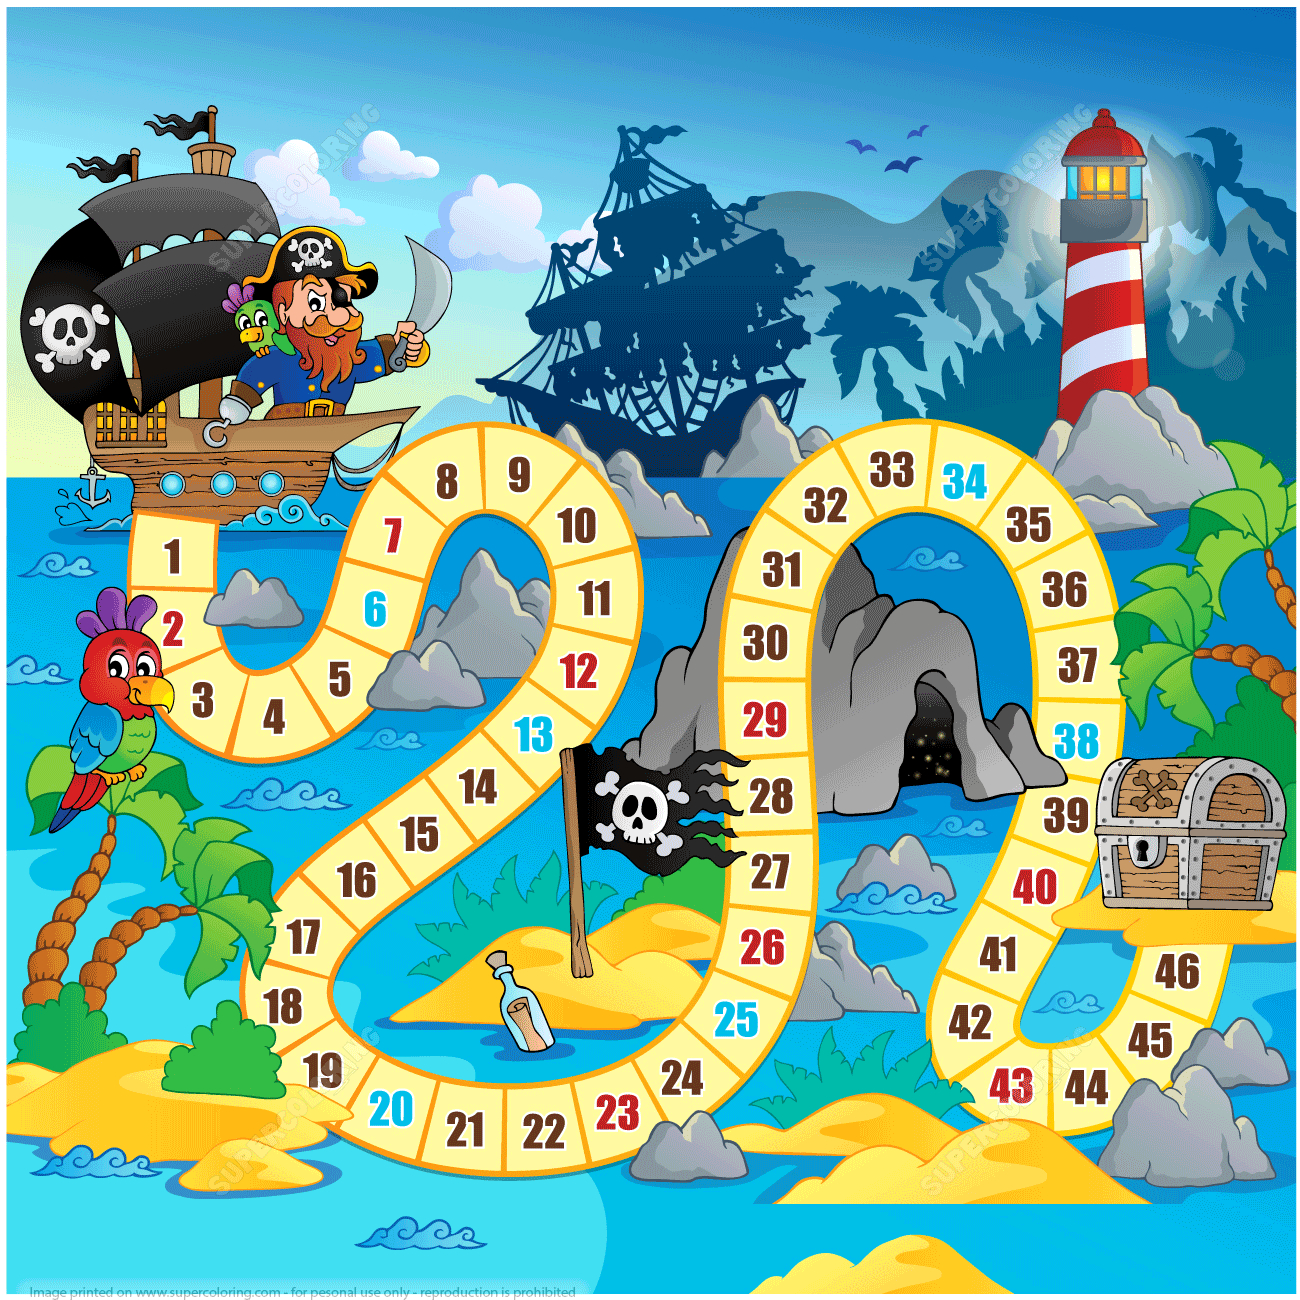 Pirate Board Game Printable Template | Free Printable Papercraft - Free Printable Board Games